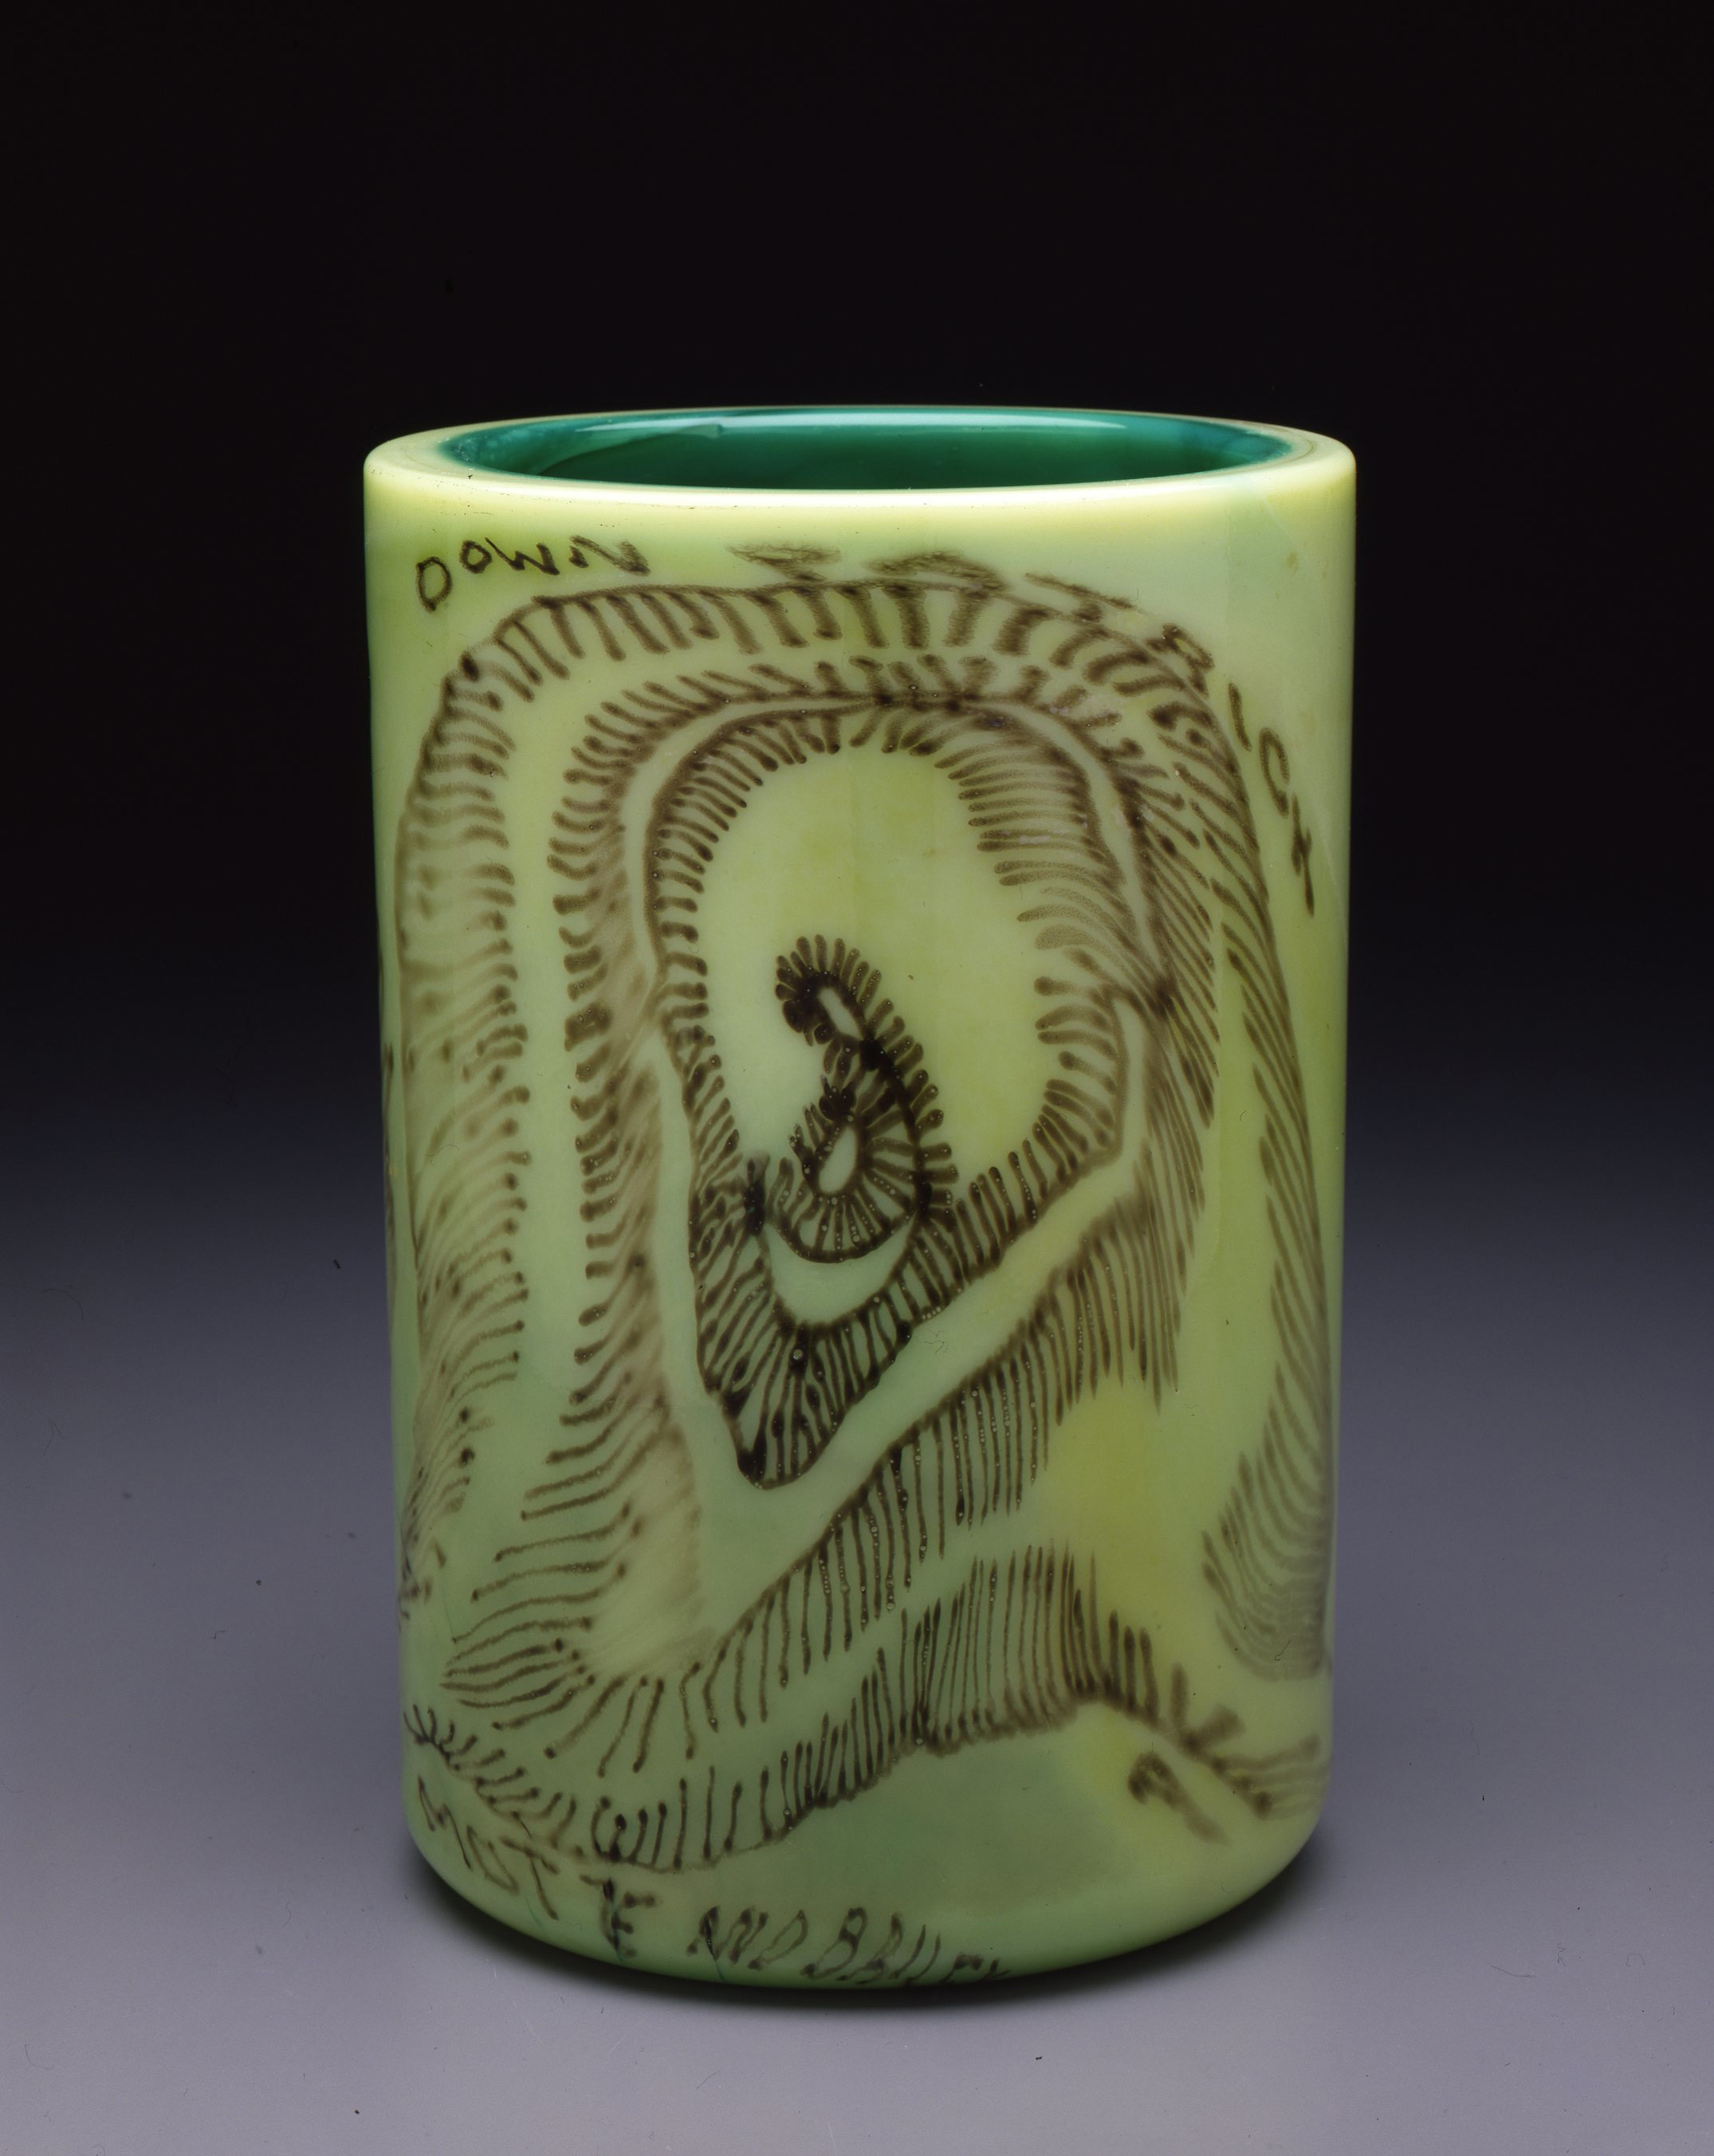 Dale Chihuly,  Irish Cylinder #5   (1975, glass, 11 1/2 x 7 1/2 inches), DC.267